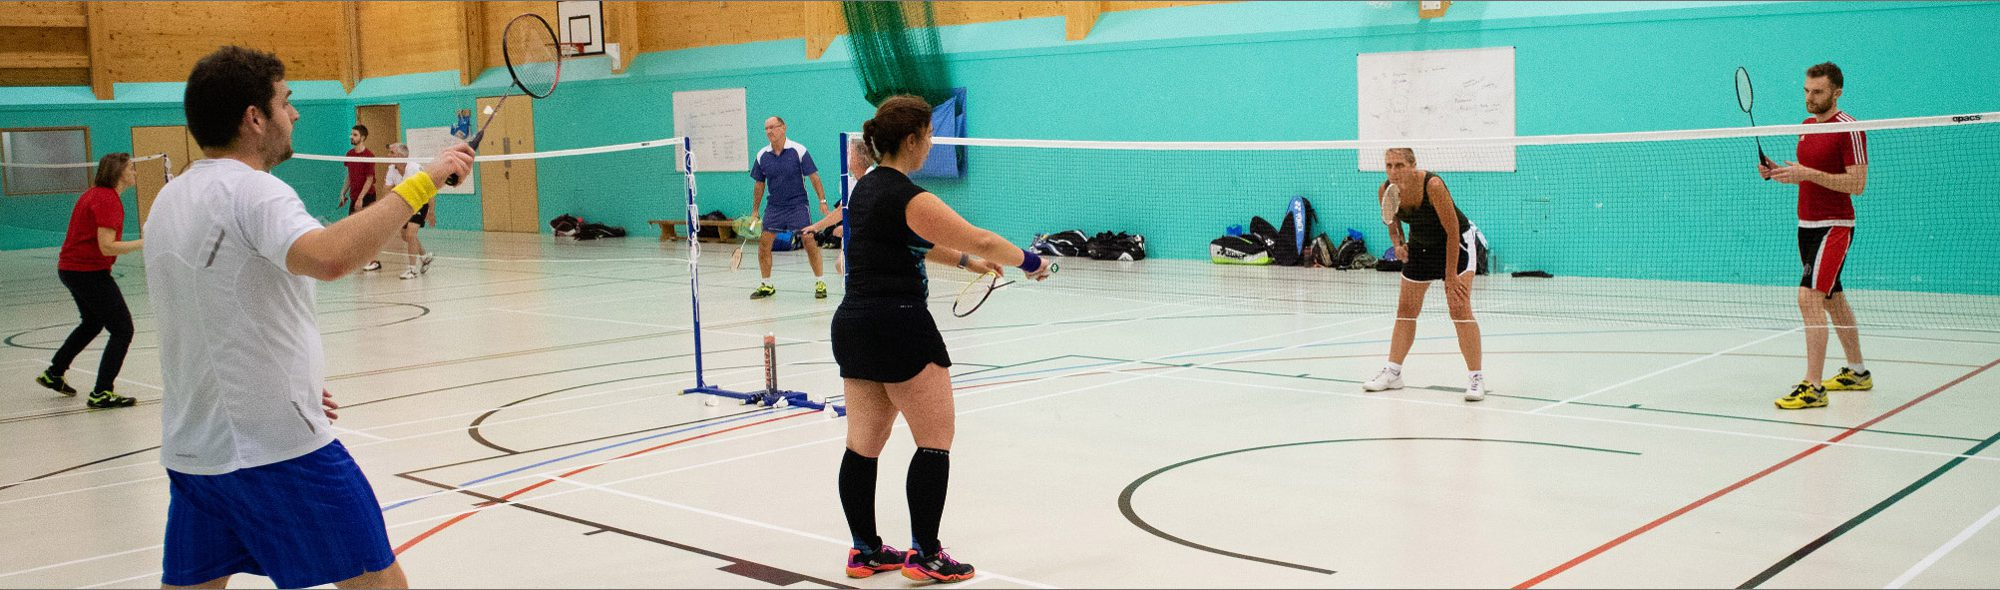 People playing mixed badminton at Keynsham Badminton Club